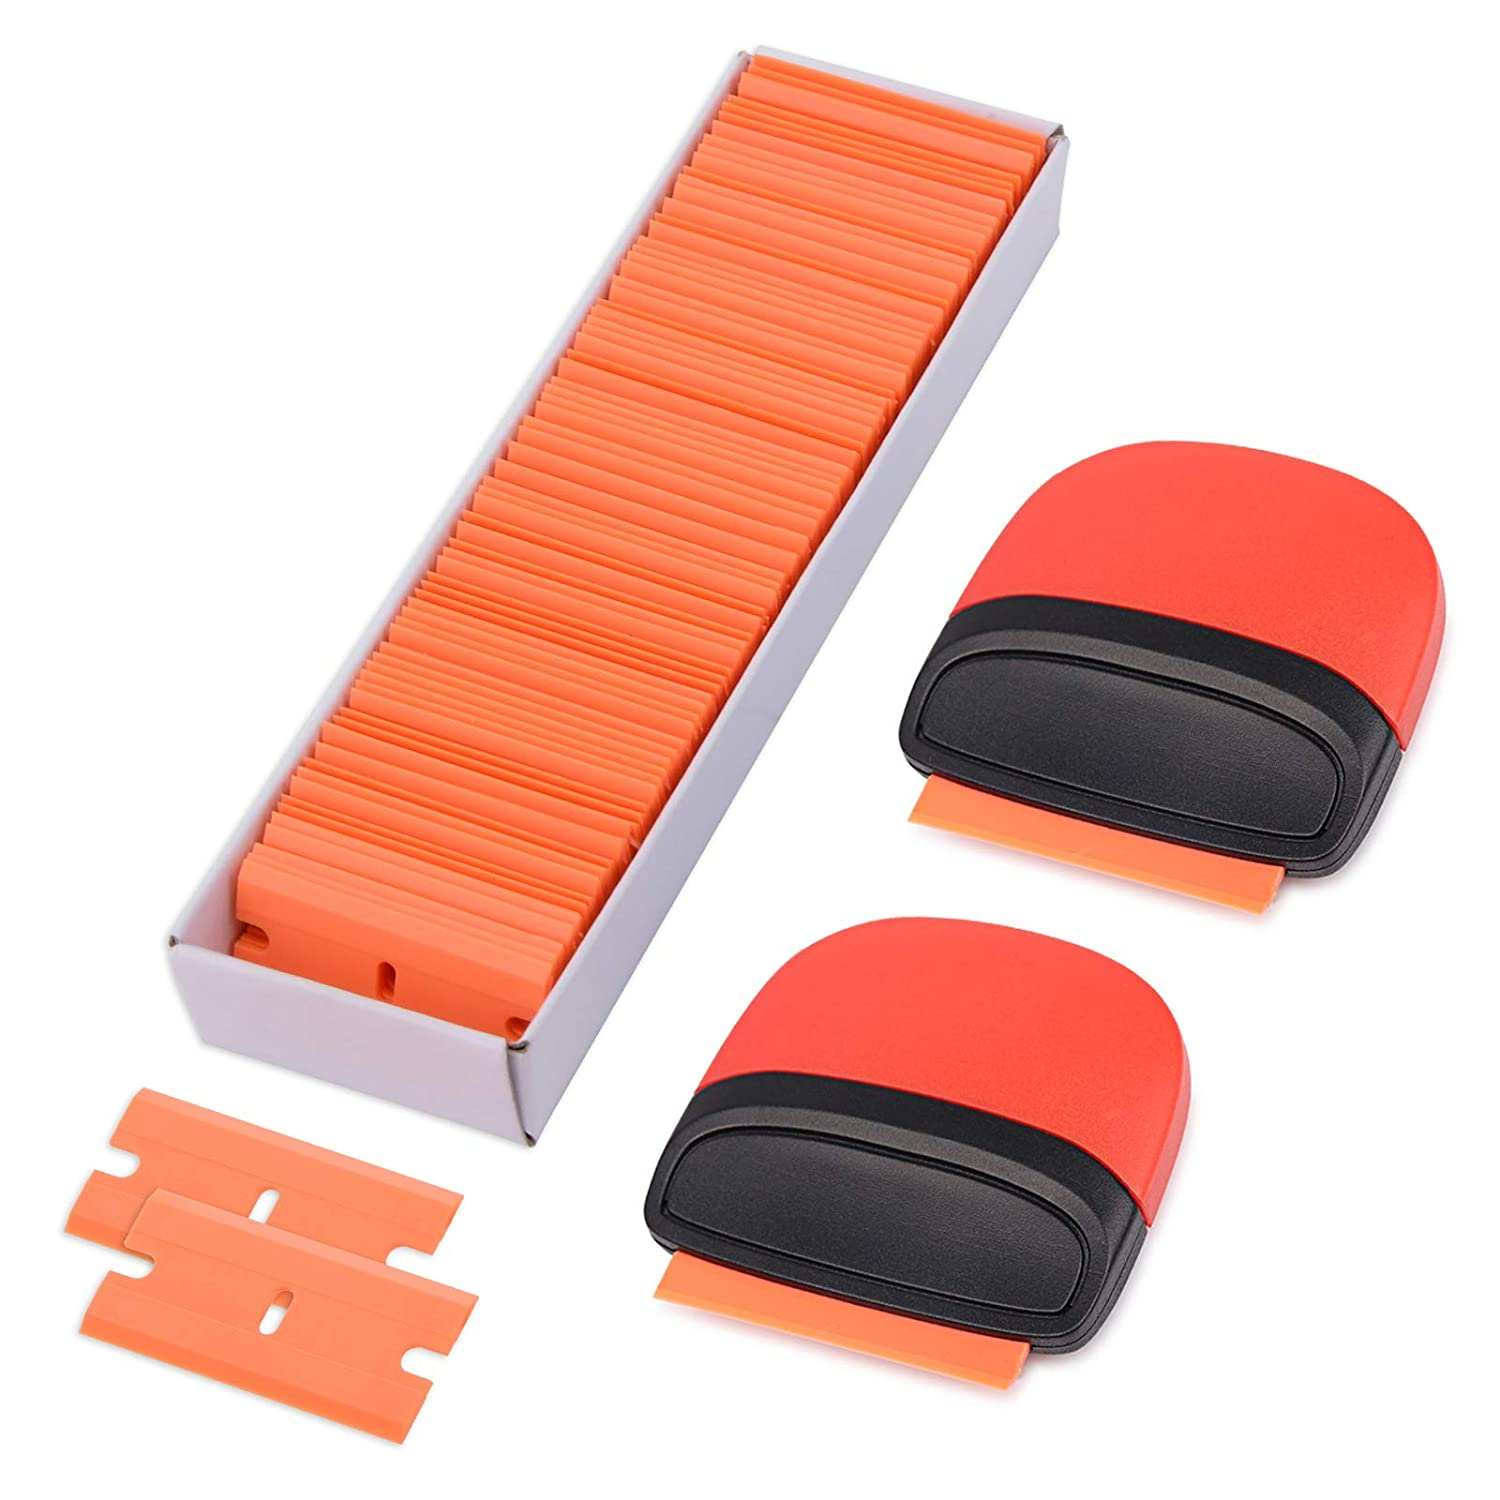 Gomake Mini Size Plastic Razor Blades Scraper Old Label and Decal Cleaning 2PCS Scraper with 100PCS Double Edge Plastic Blades for Window Glass Sticker Removal